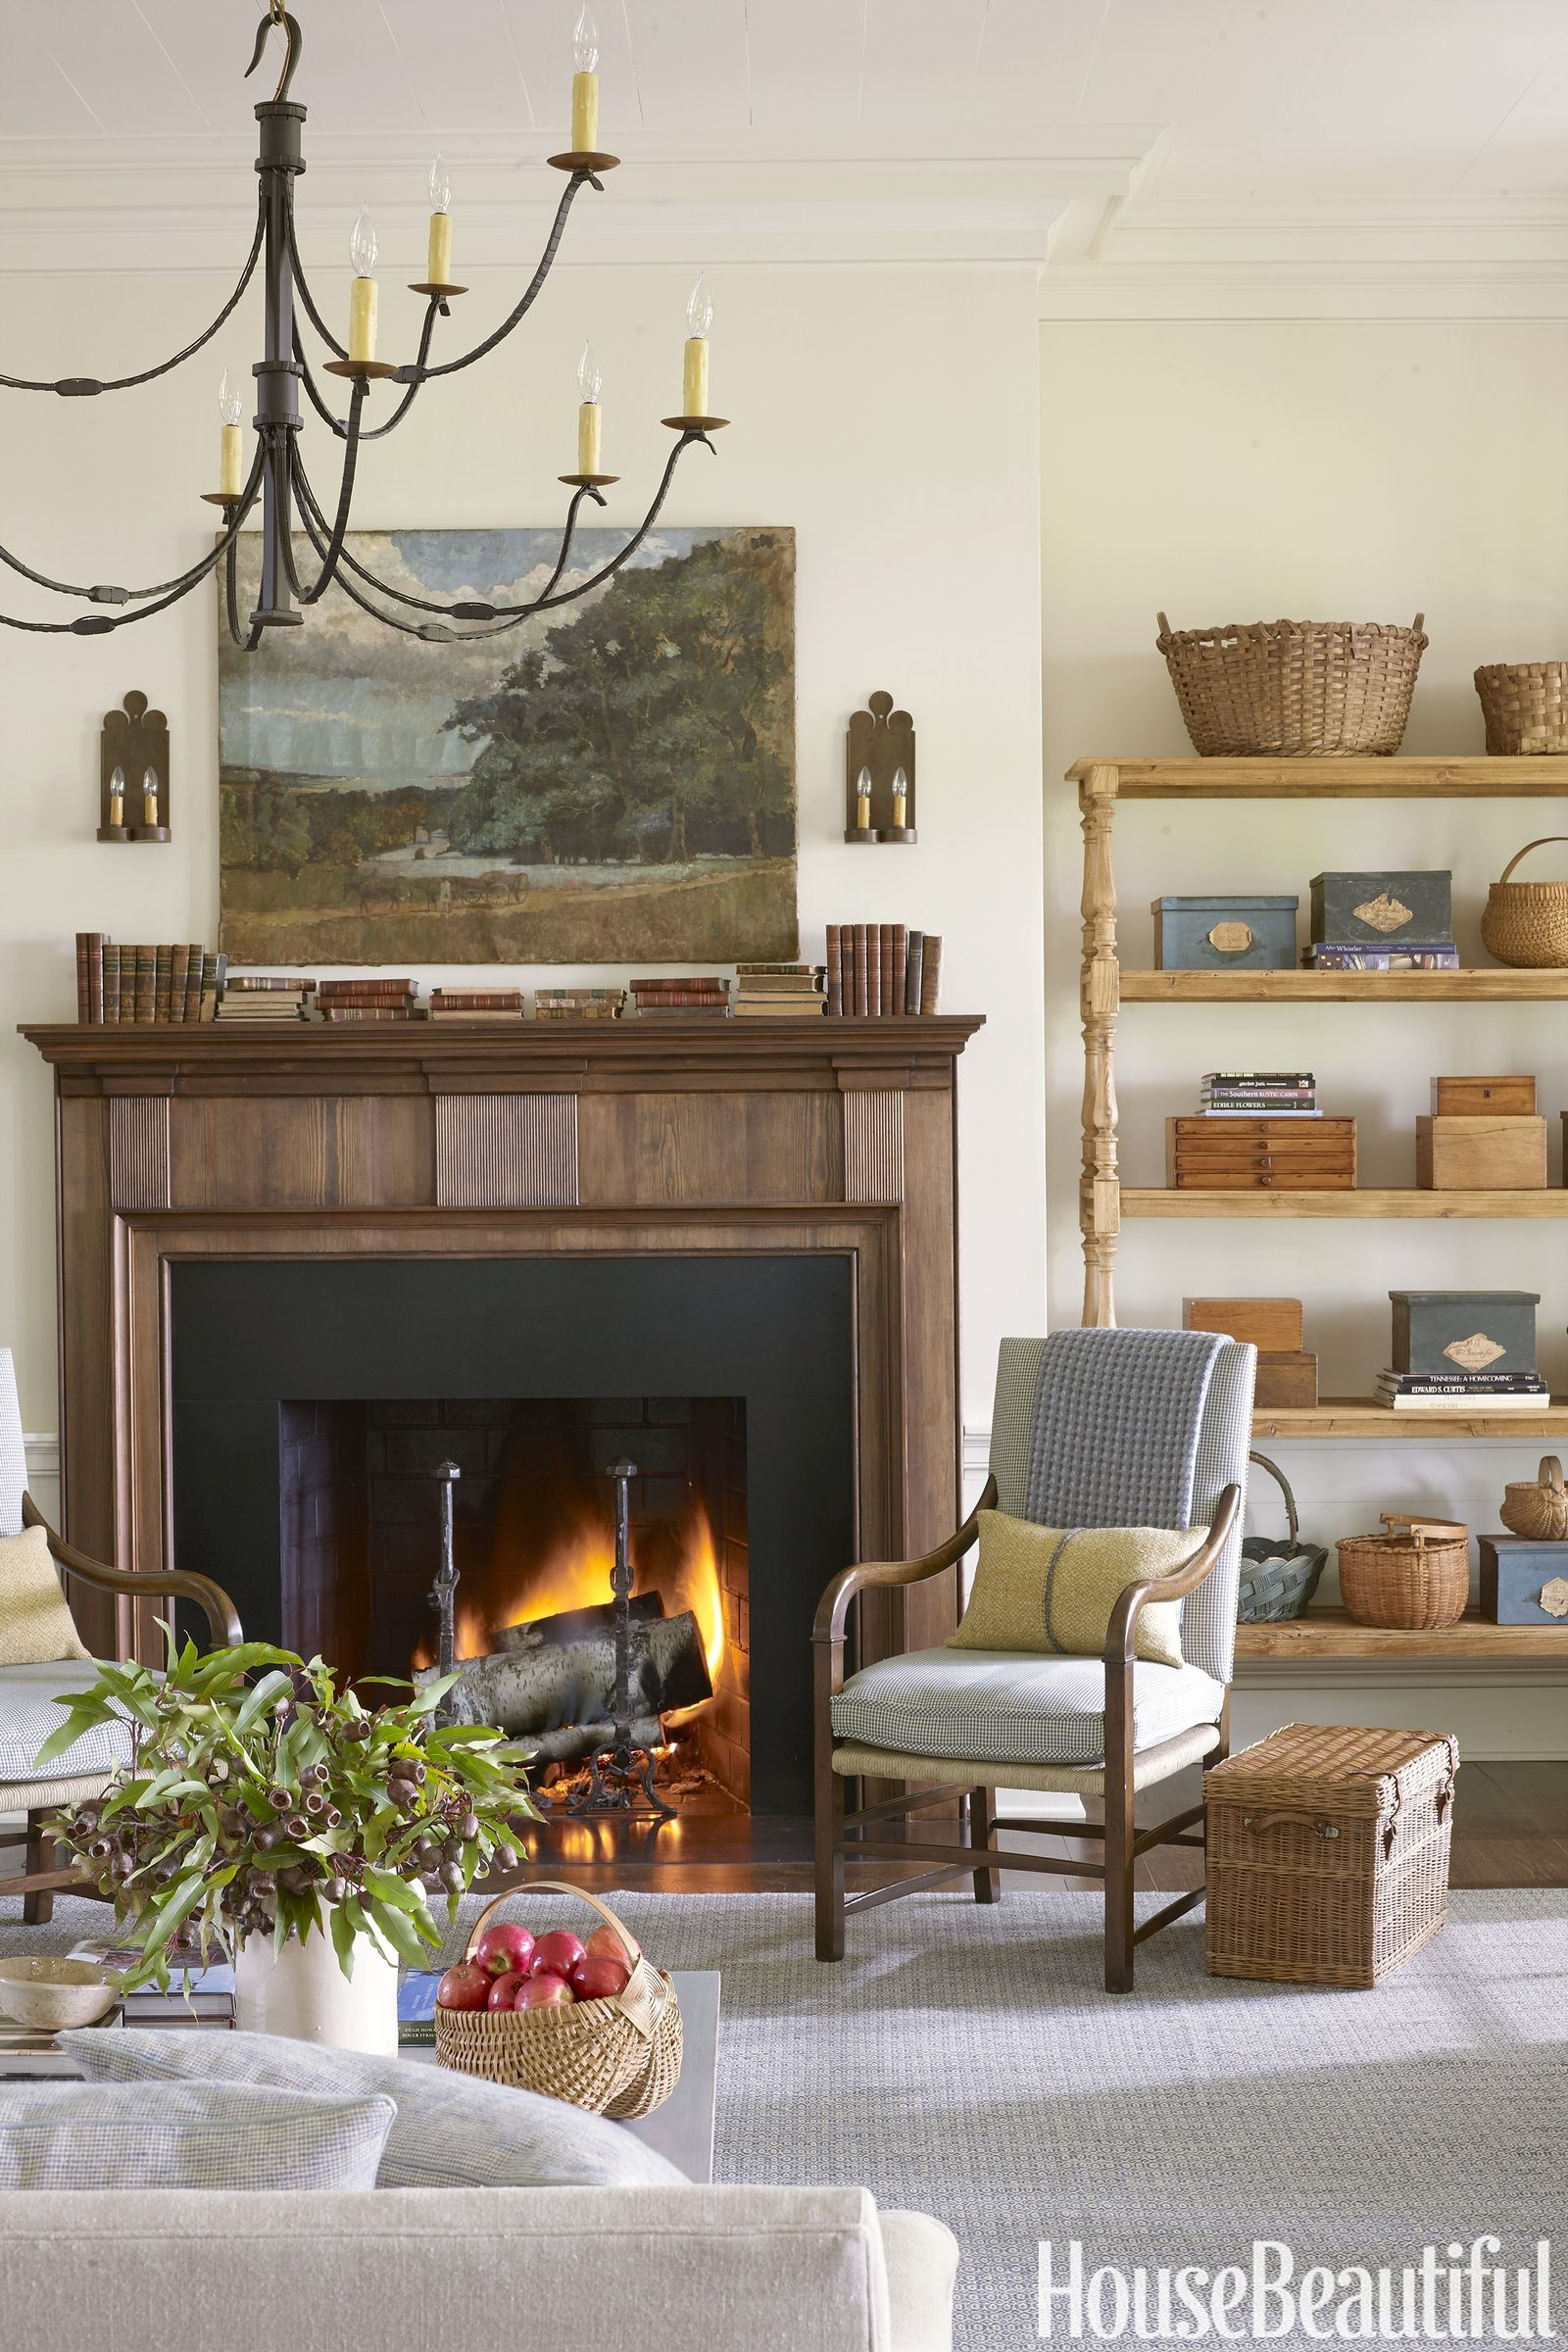 Living Room Designer Delectable This Country Home Is Singlehandedly Making Baskets Cool Again Design Ideas